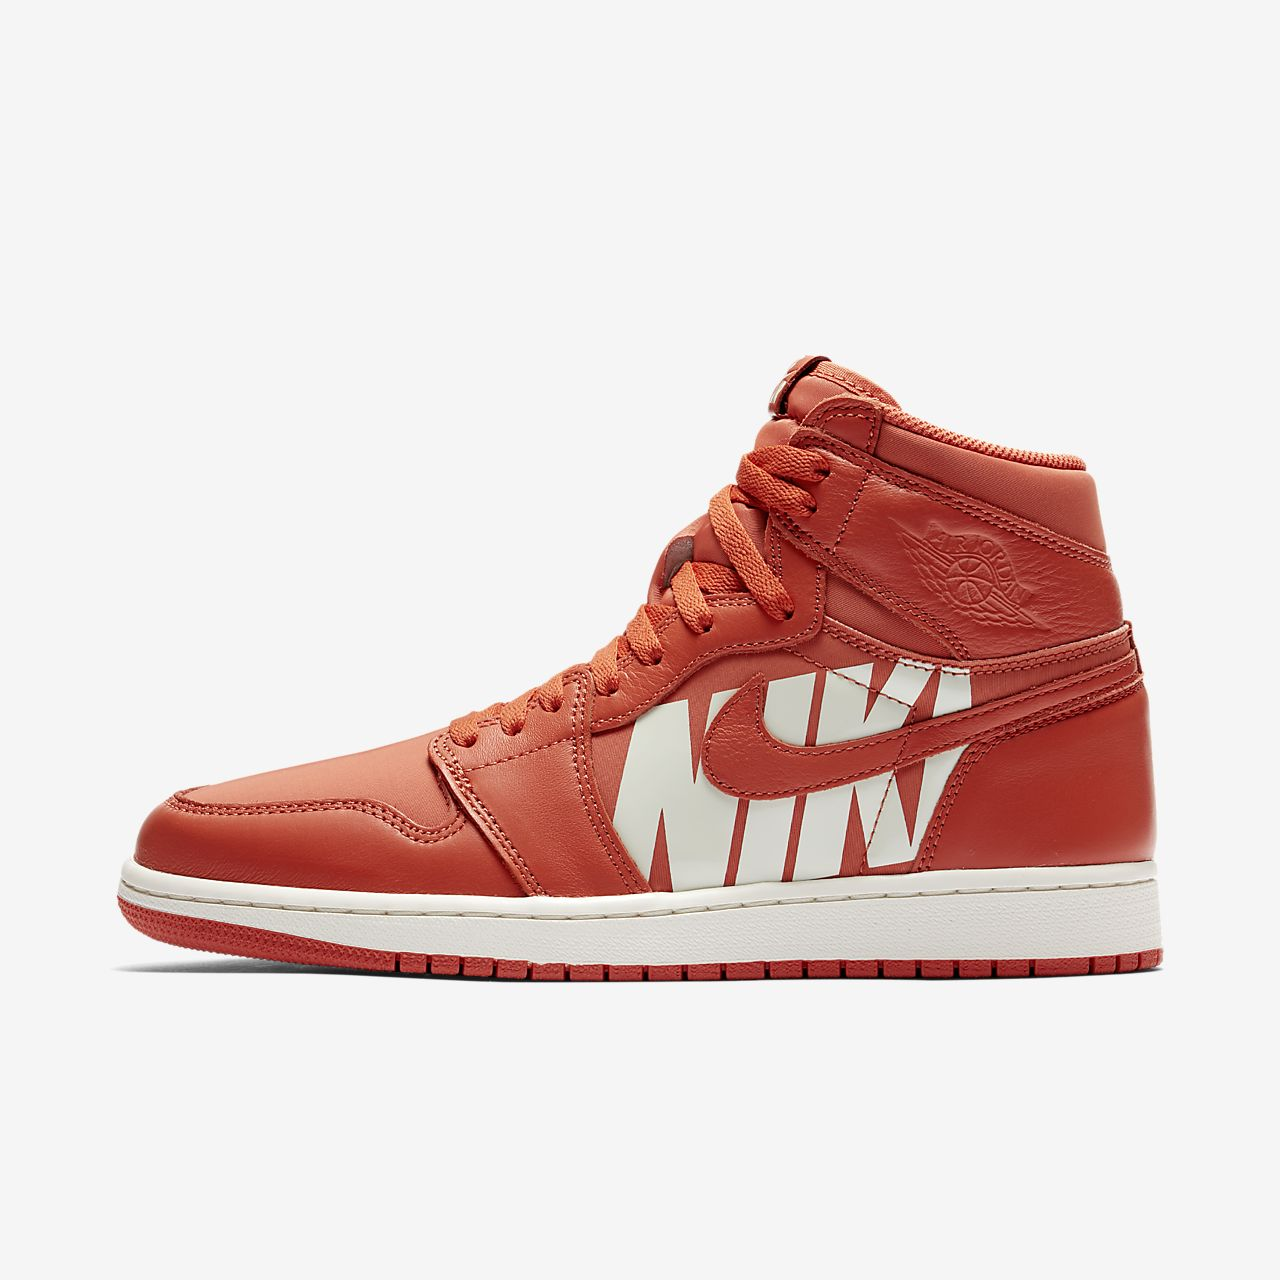 0c28d8f02141 Air Jordan 1 Retro High OG Shoe. Nike.com CA